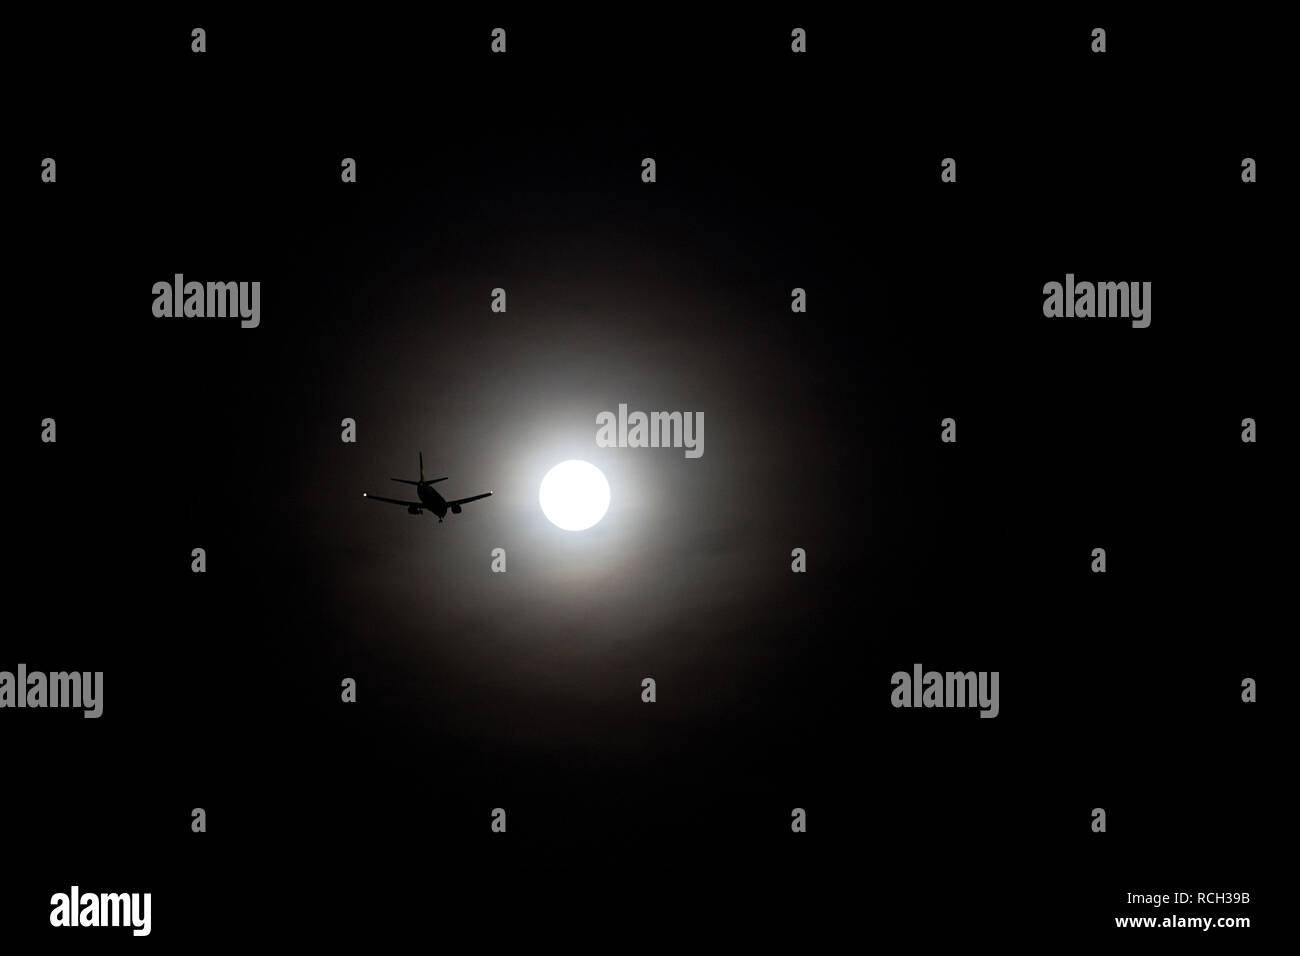 The silhouette of the plane takes off into the sky, illuminated by the light of the moon on a black background - Stock Image